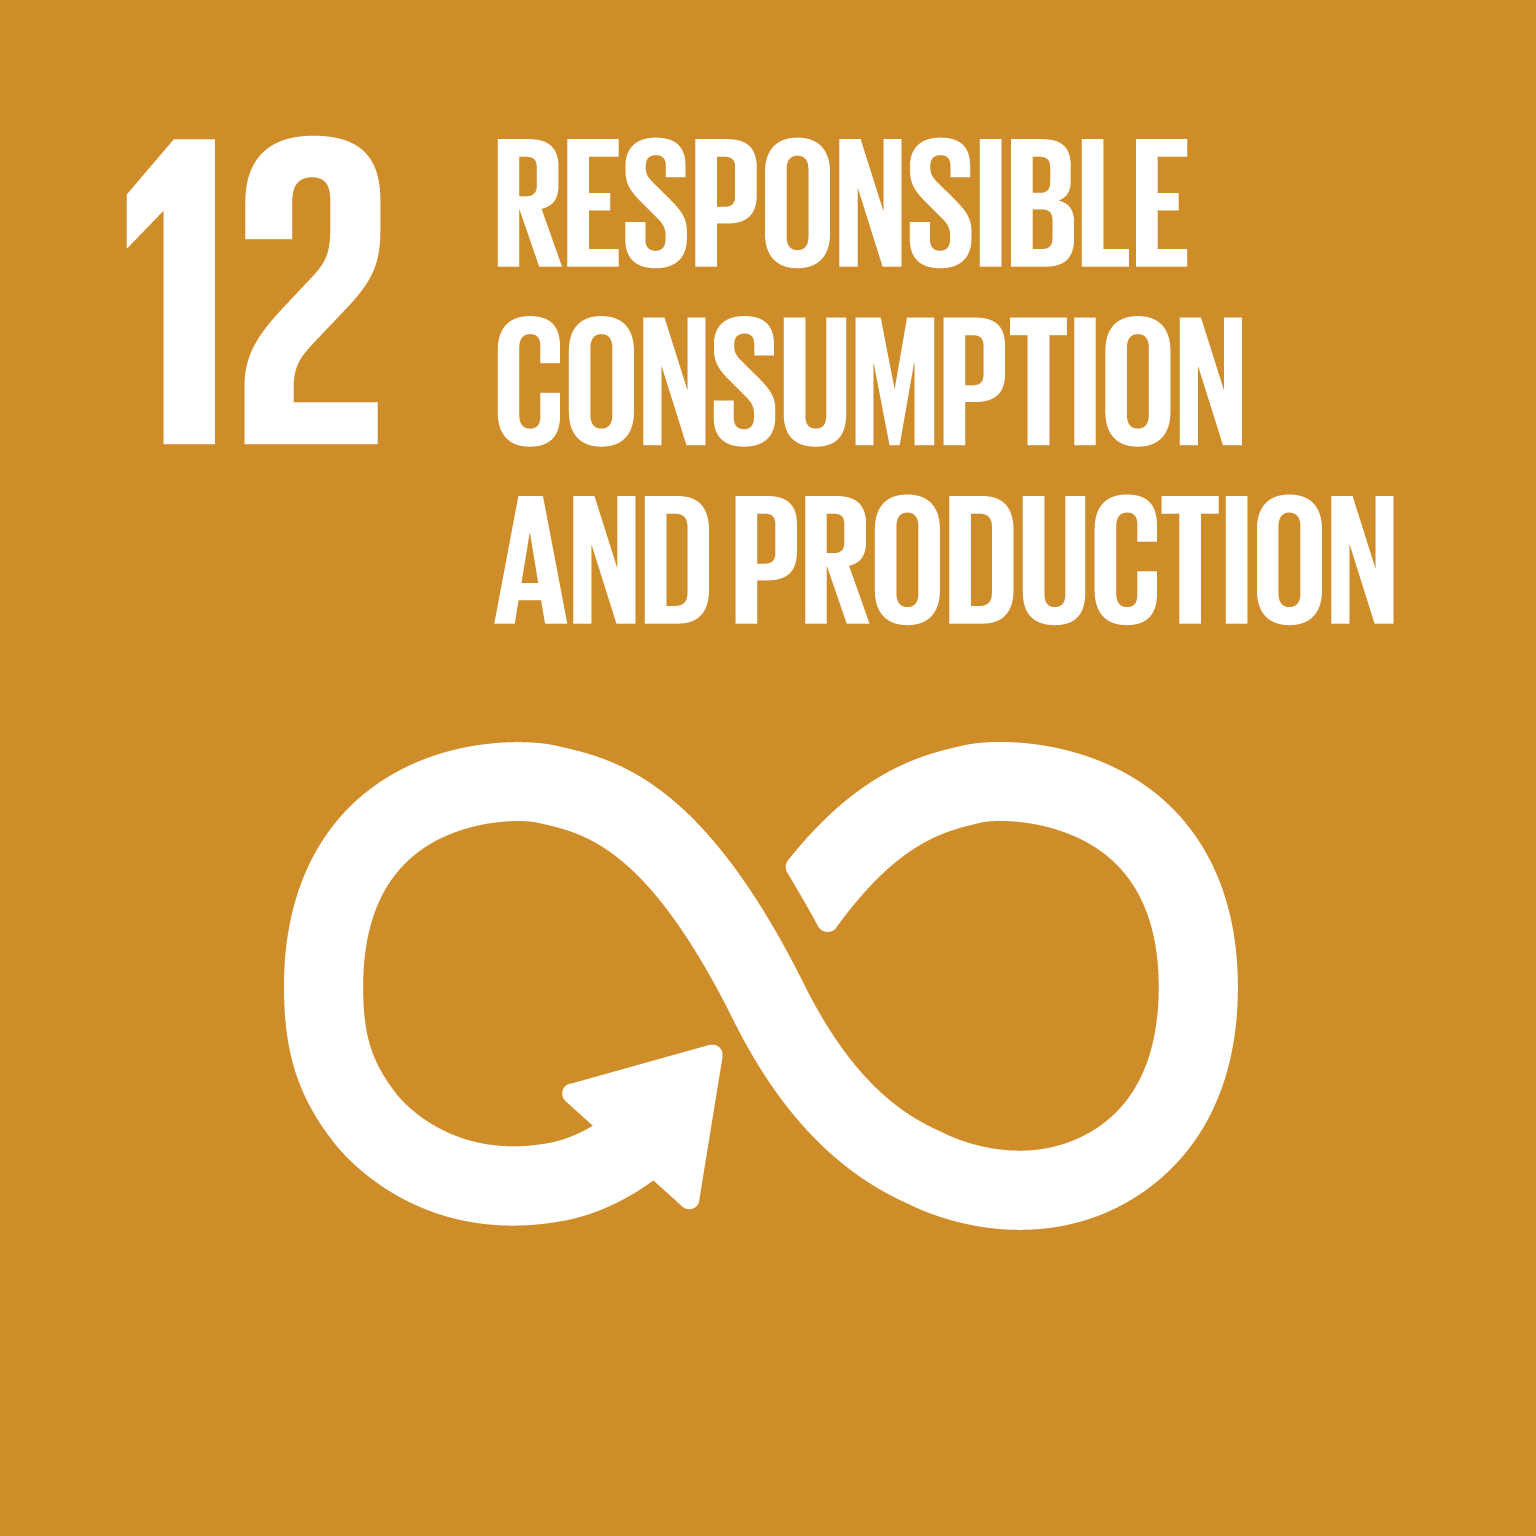 Responsible consumption and production - Sustainable Development Goals